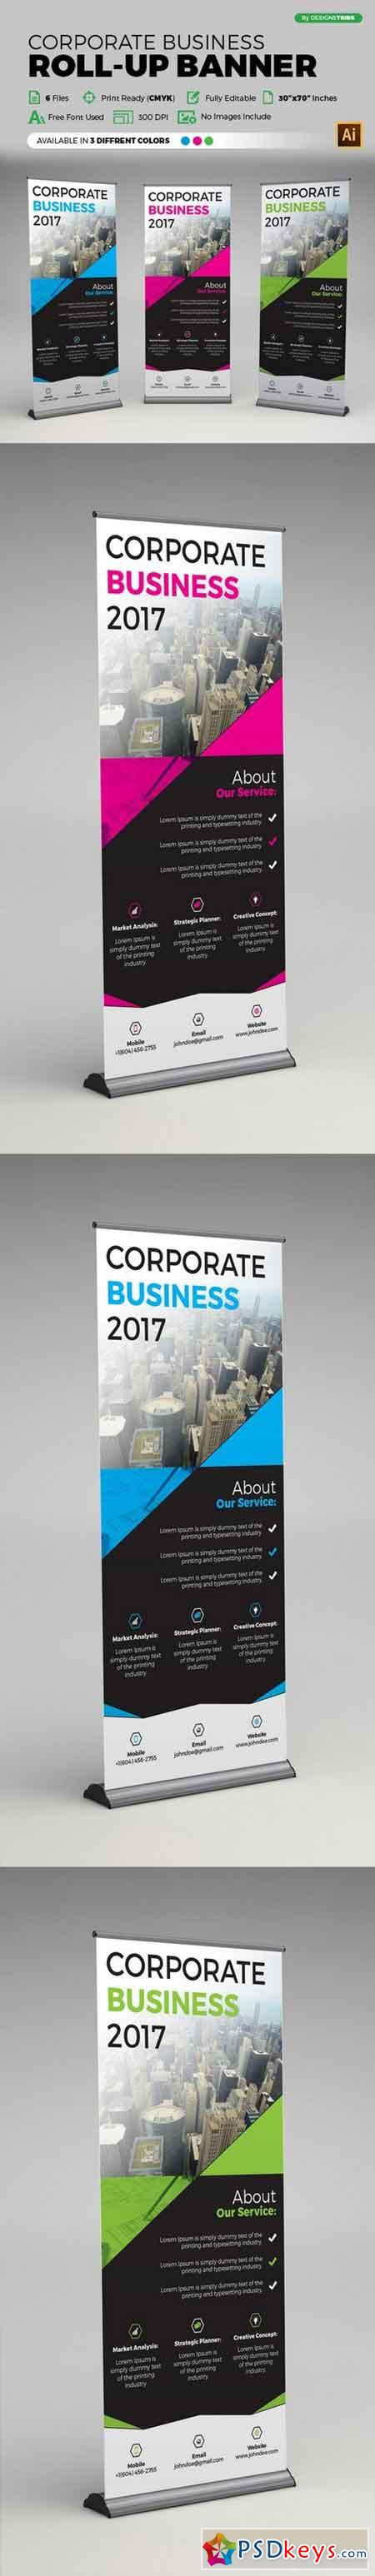 Corporate Roll Up Banner 1466038